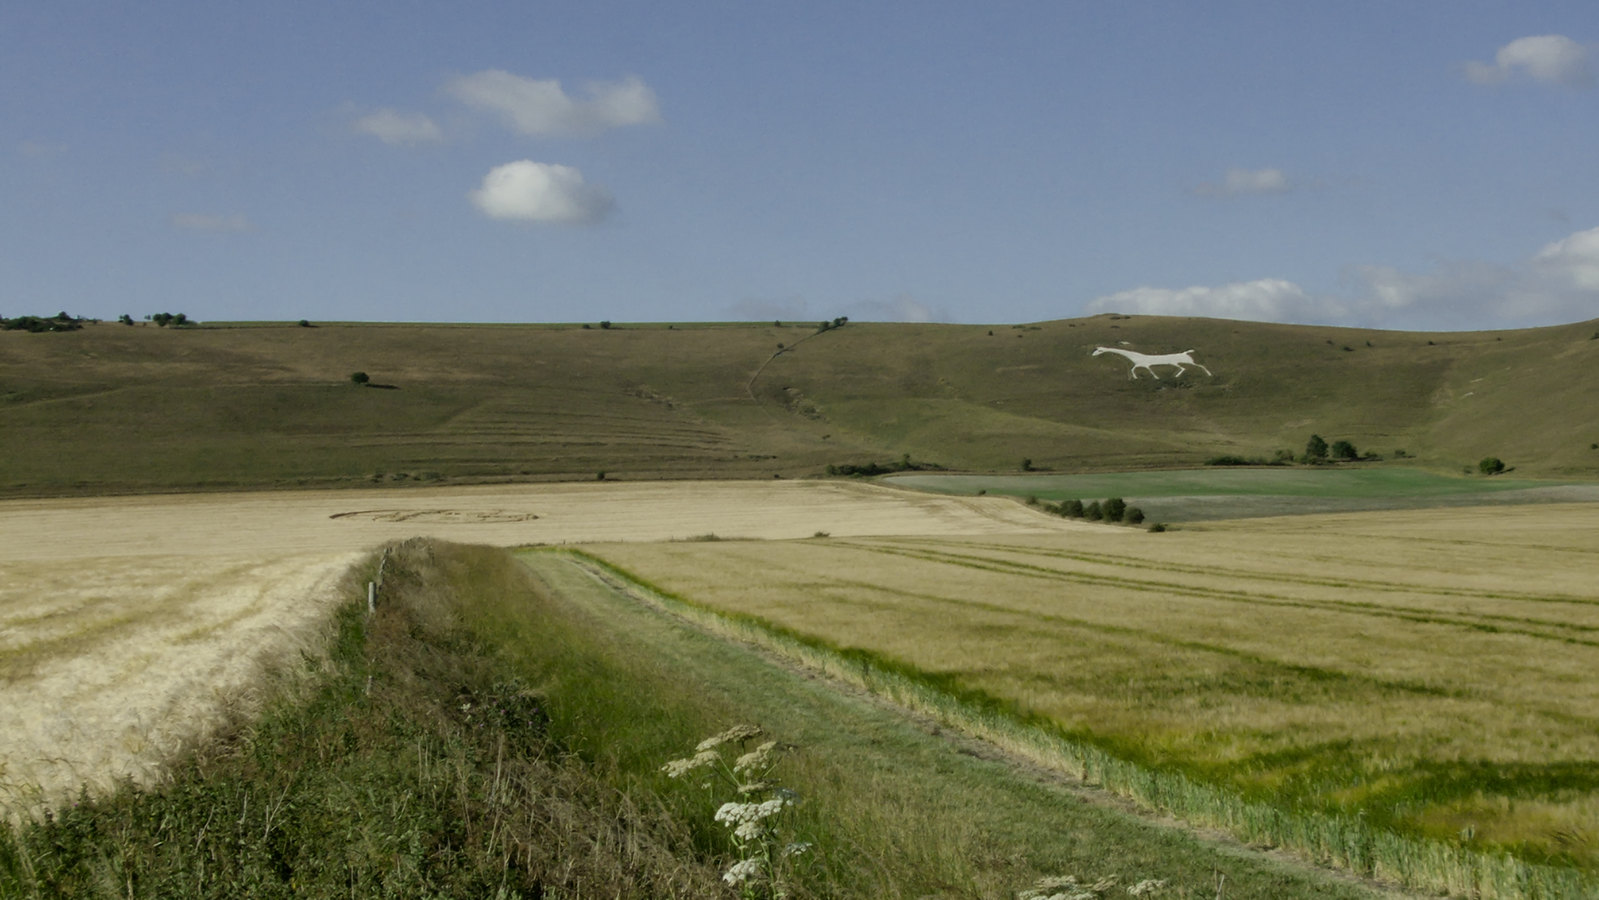 White Horse and Crop Circle